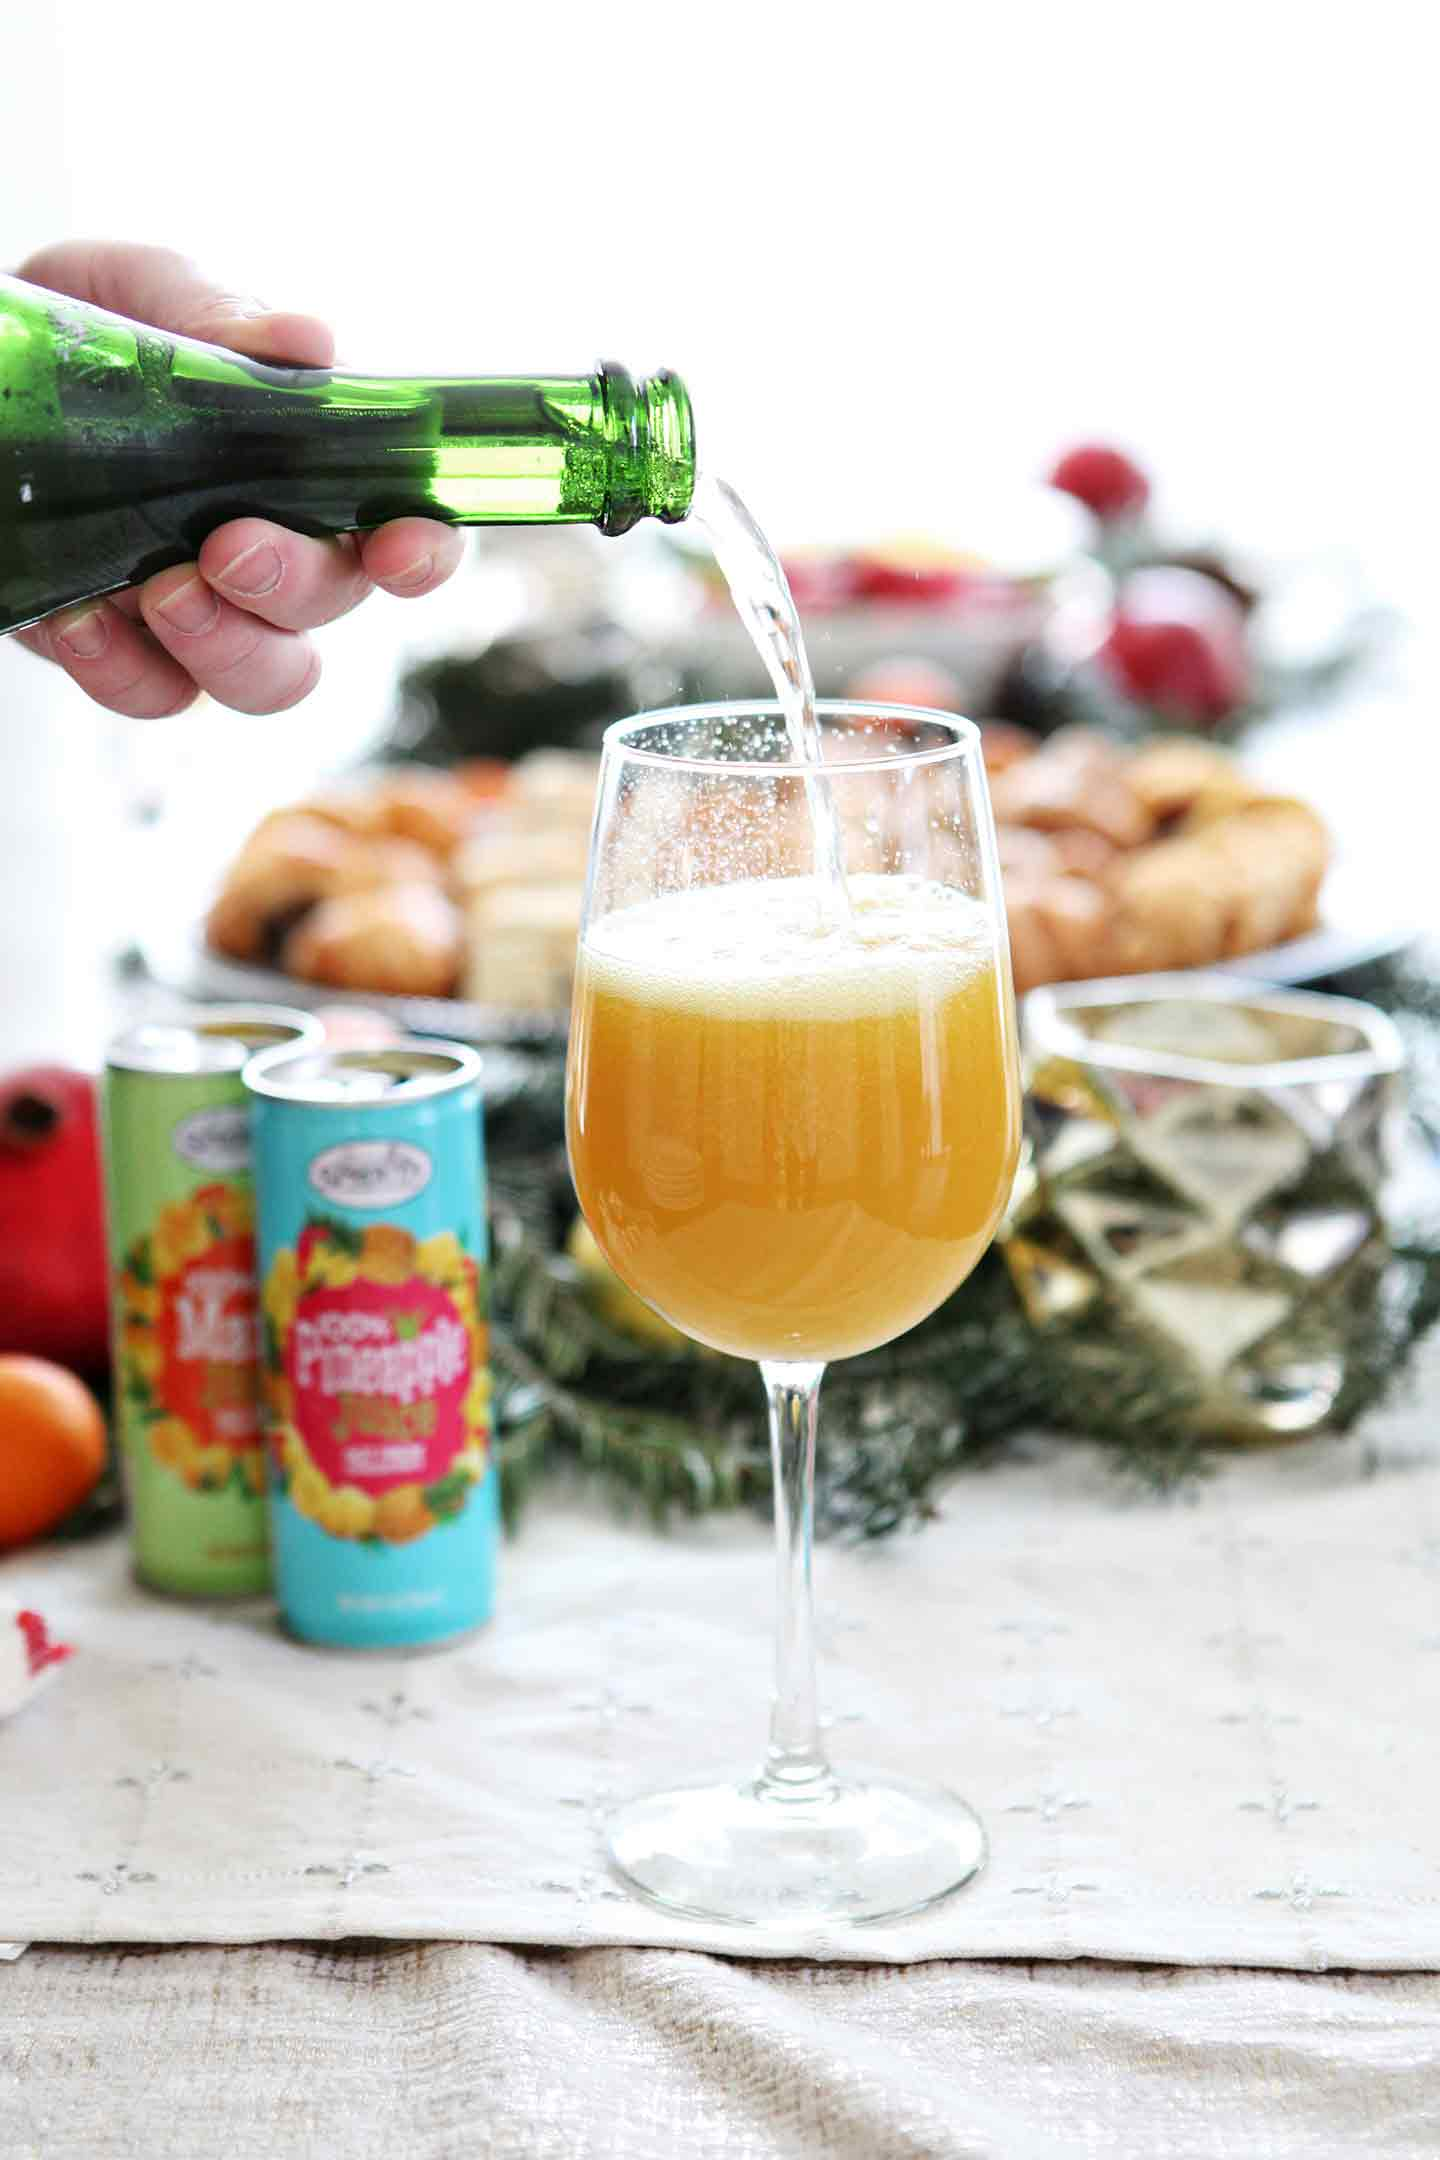 Champagne is poured into a wine glass with mango juice to make a tropical mimosa